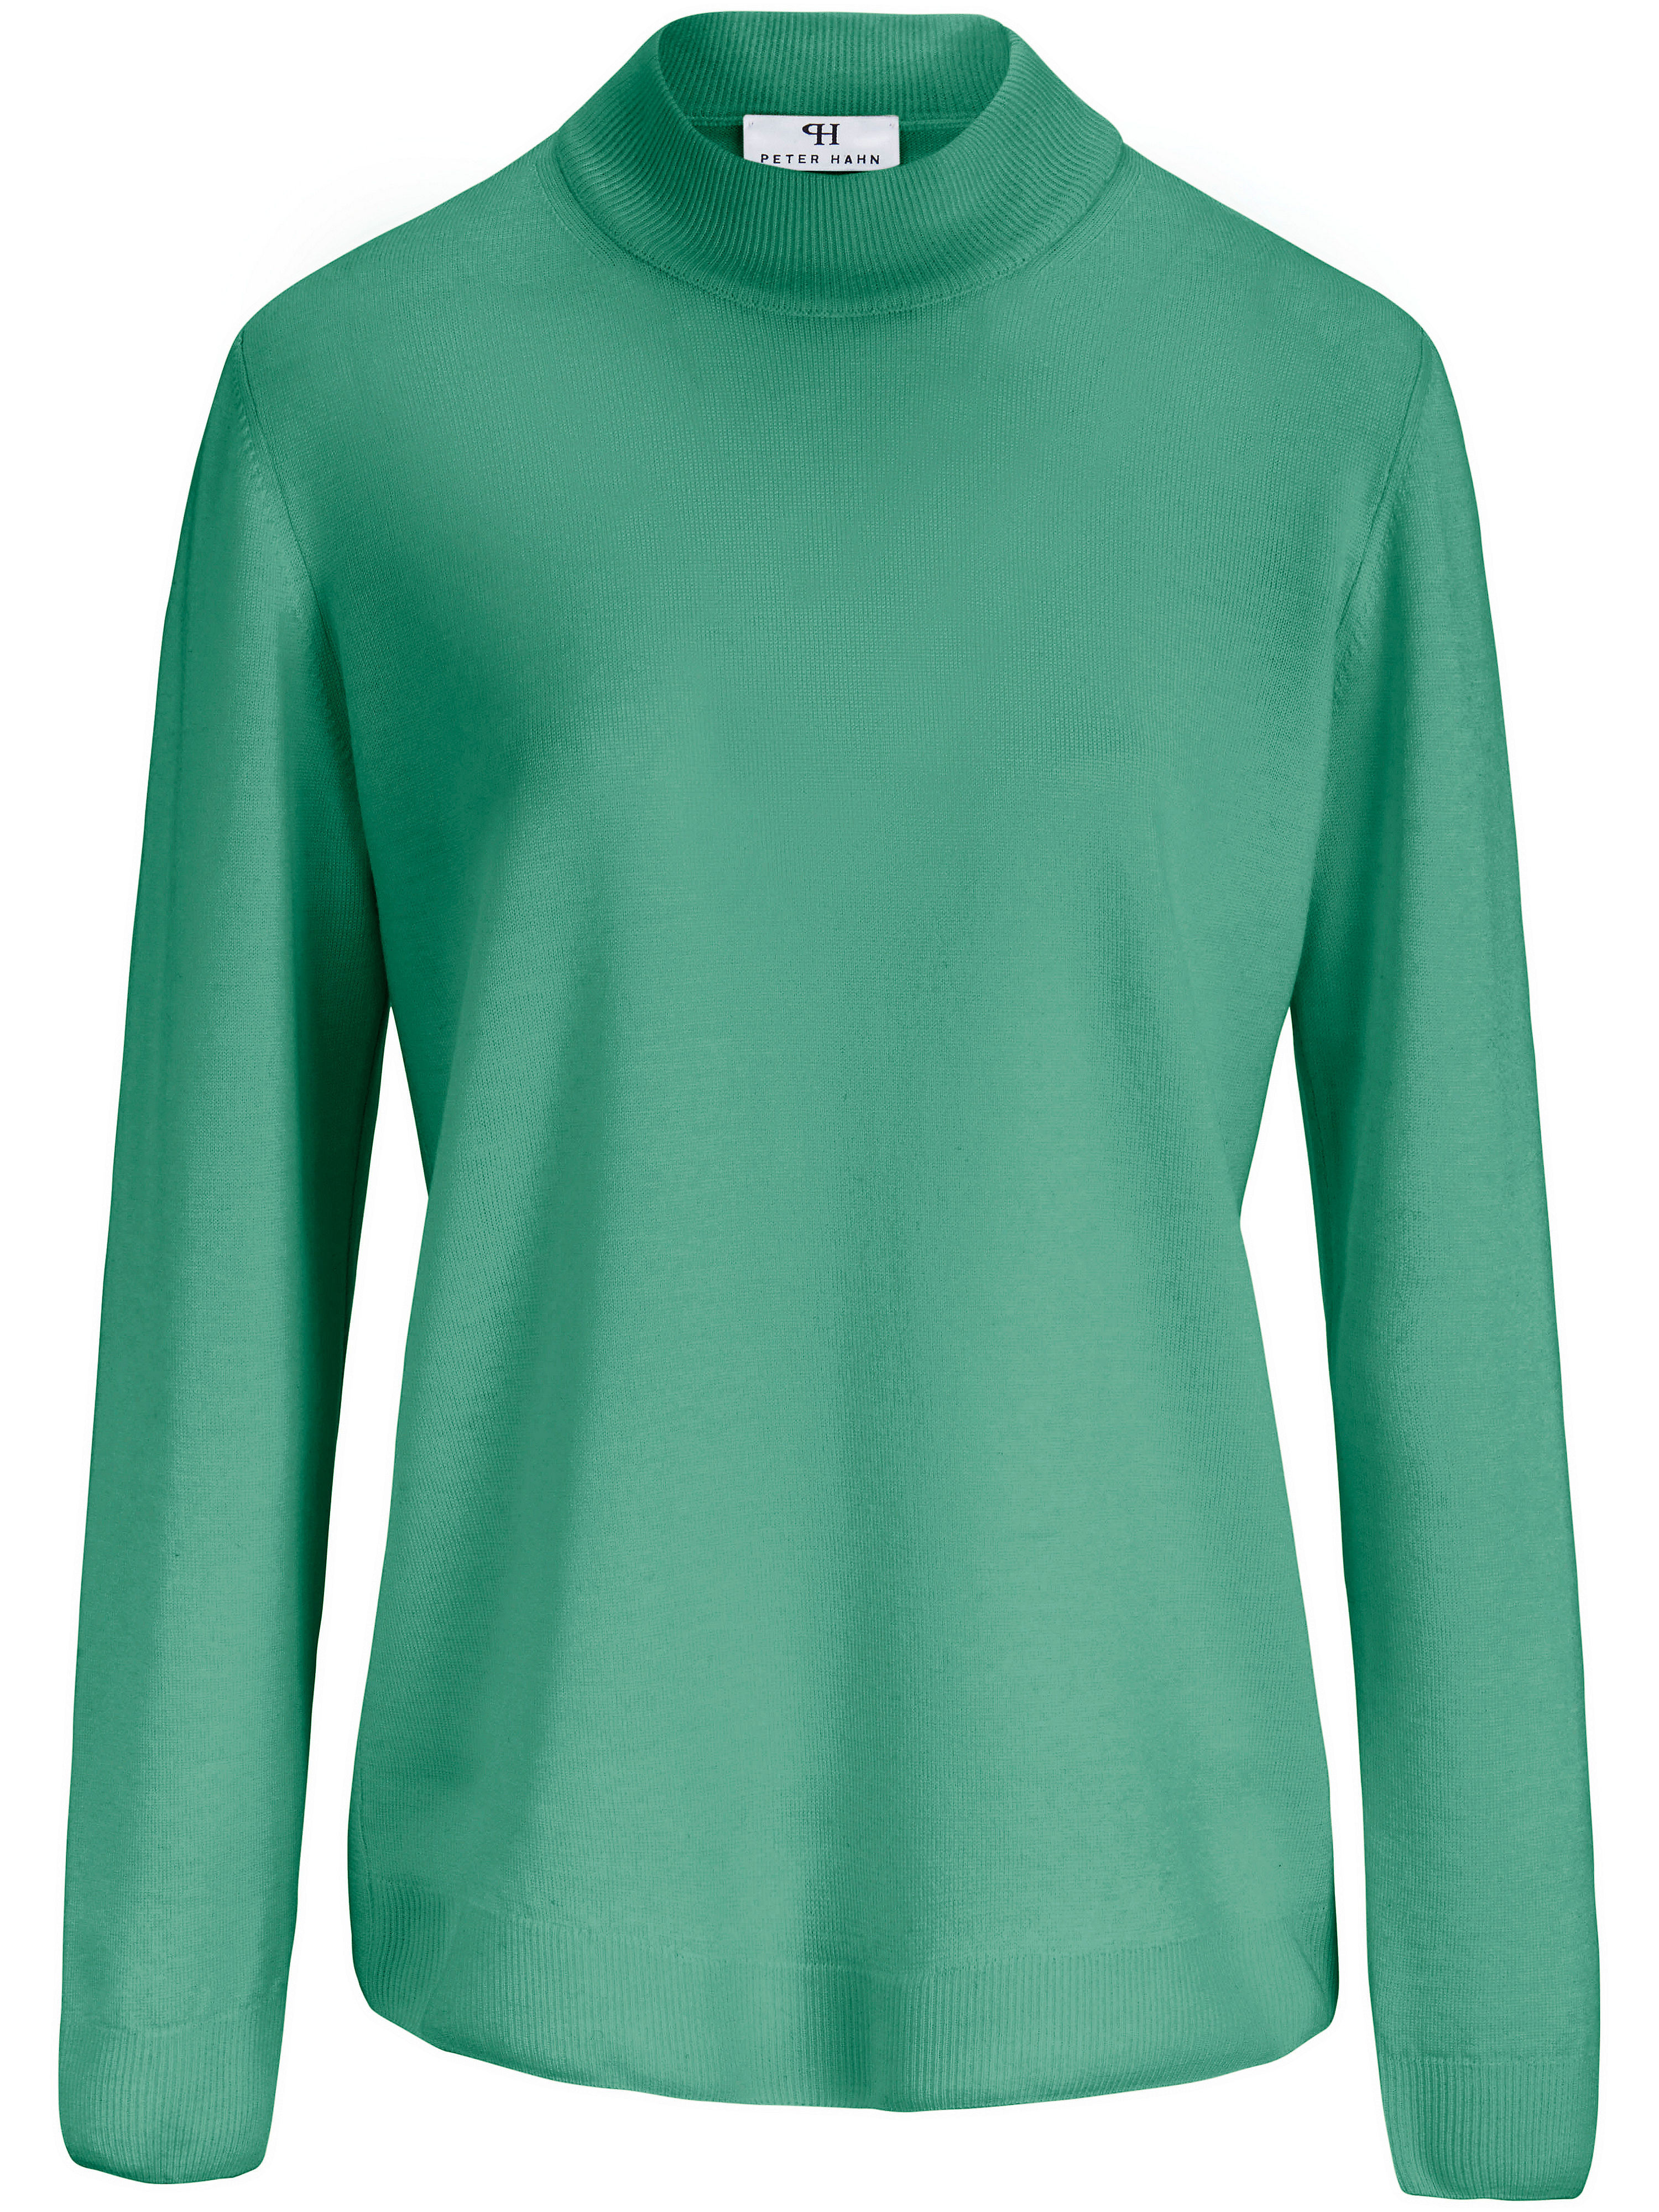 Le pull 100% laine vierge  Peter Hahn vert taille 52